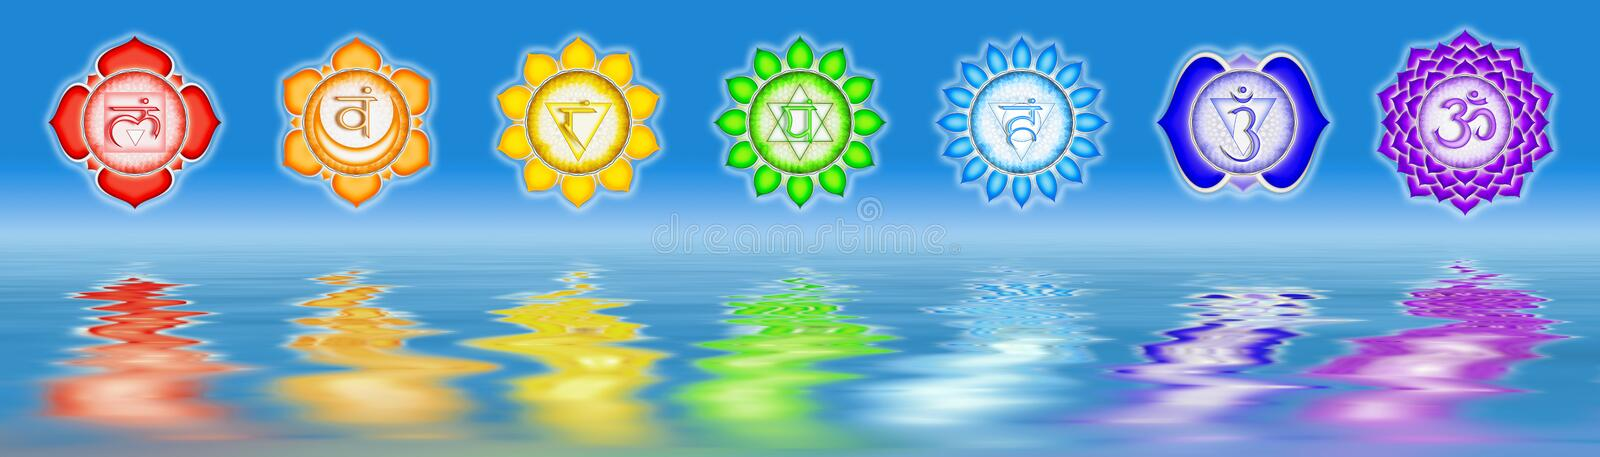 The seven main chakras. Illustration of the seven main chakras stock illustration